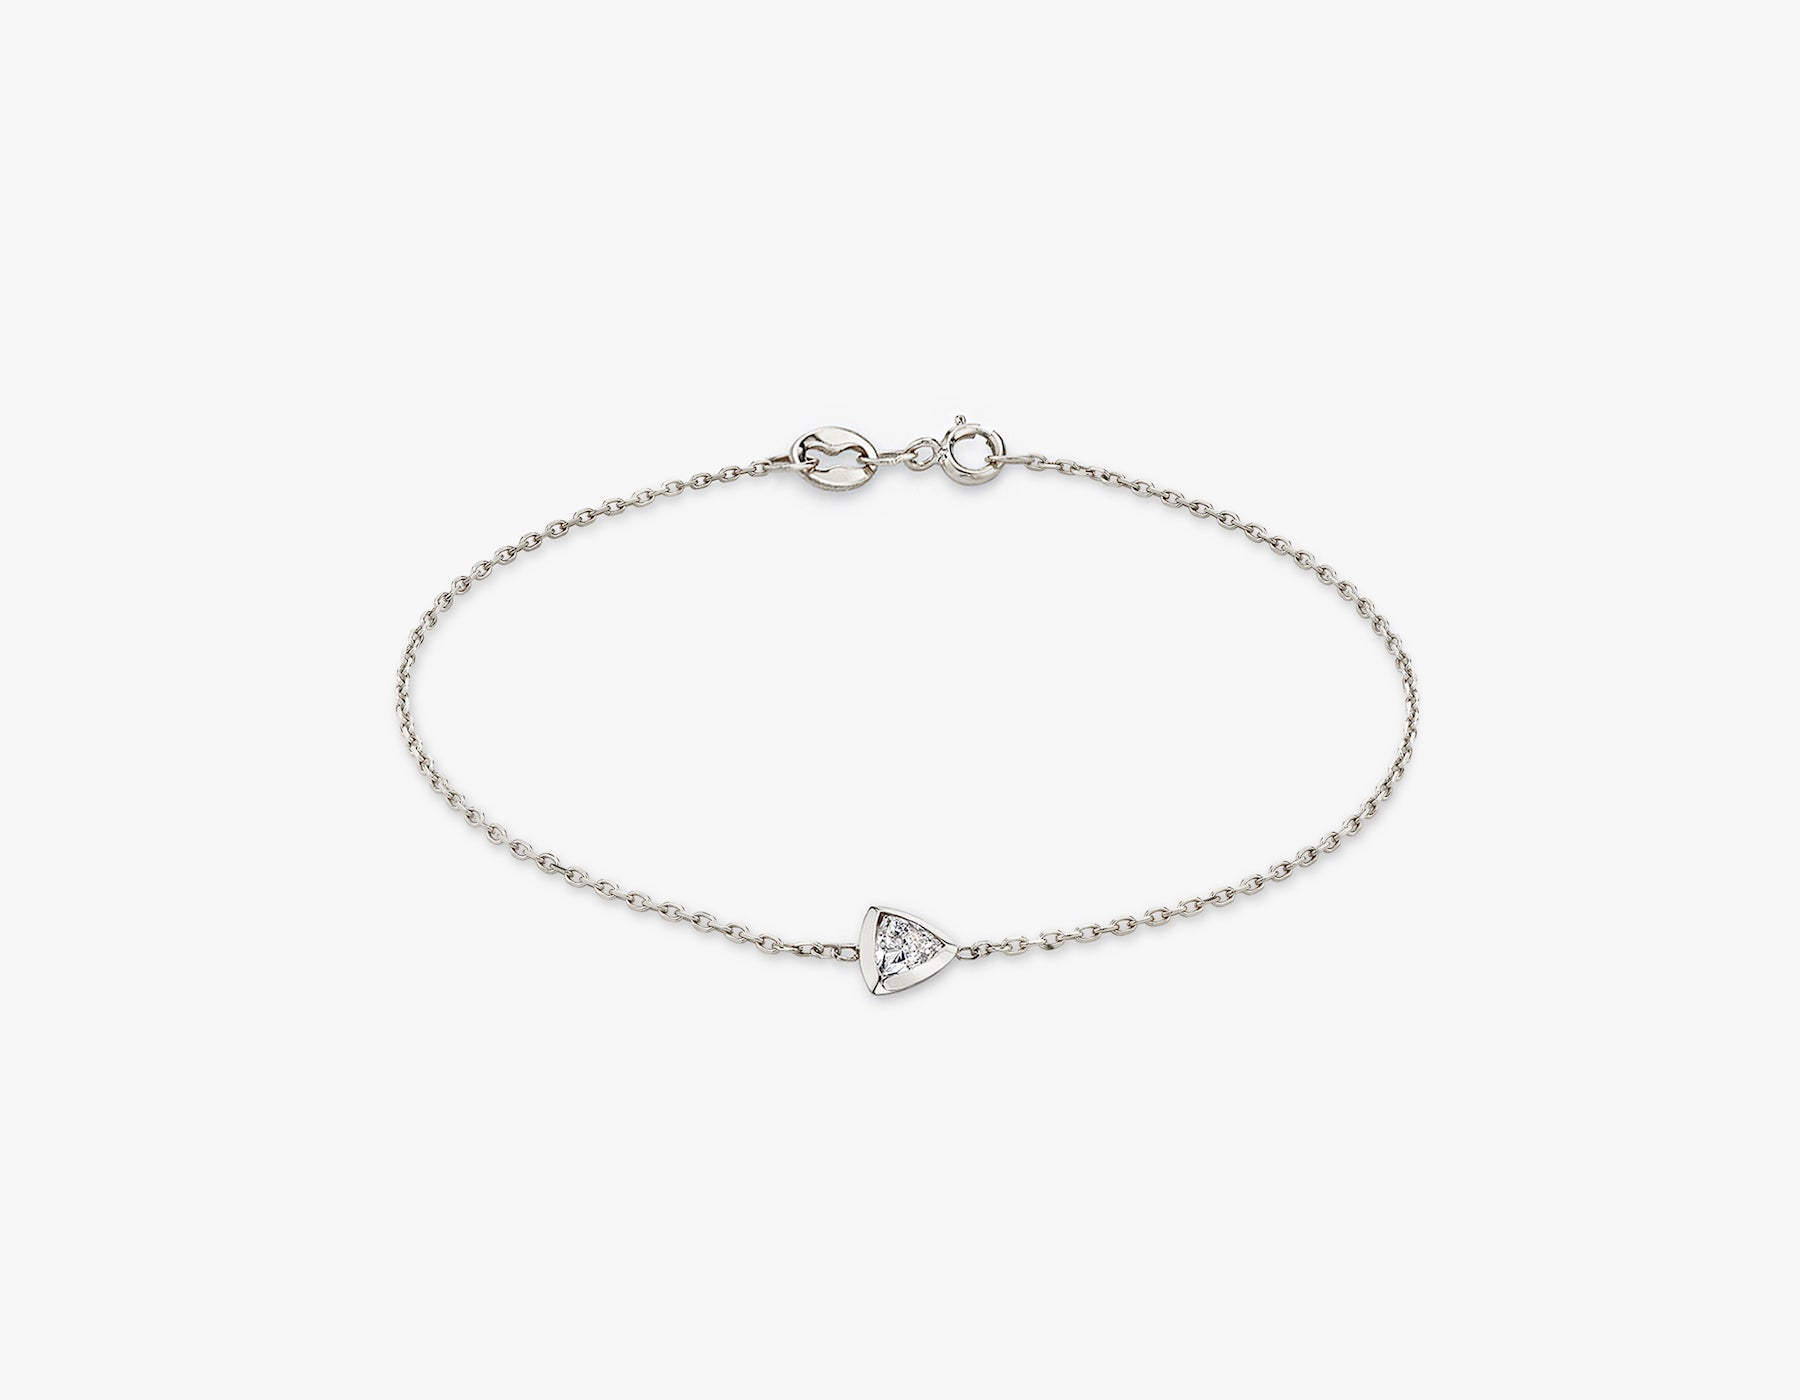 Vrai simple minimalist Trillion Diamond Bezel Bracelet, 14K White Gold